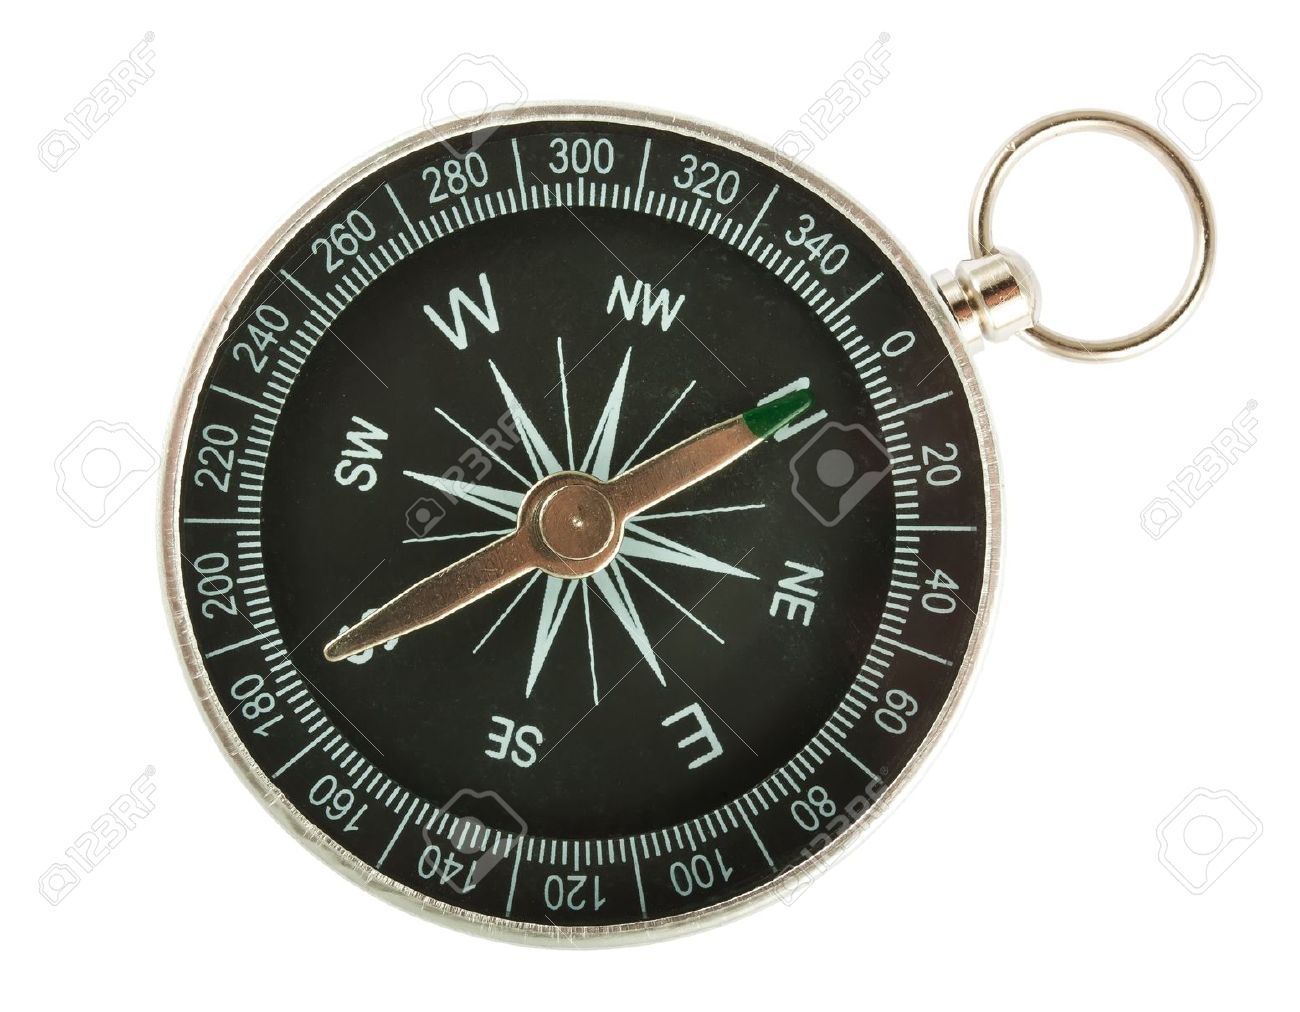 Black Compass Closeup Isolated on White Background Stock Photo - 14068386